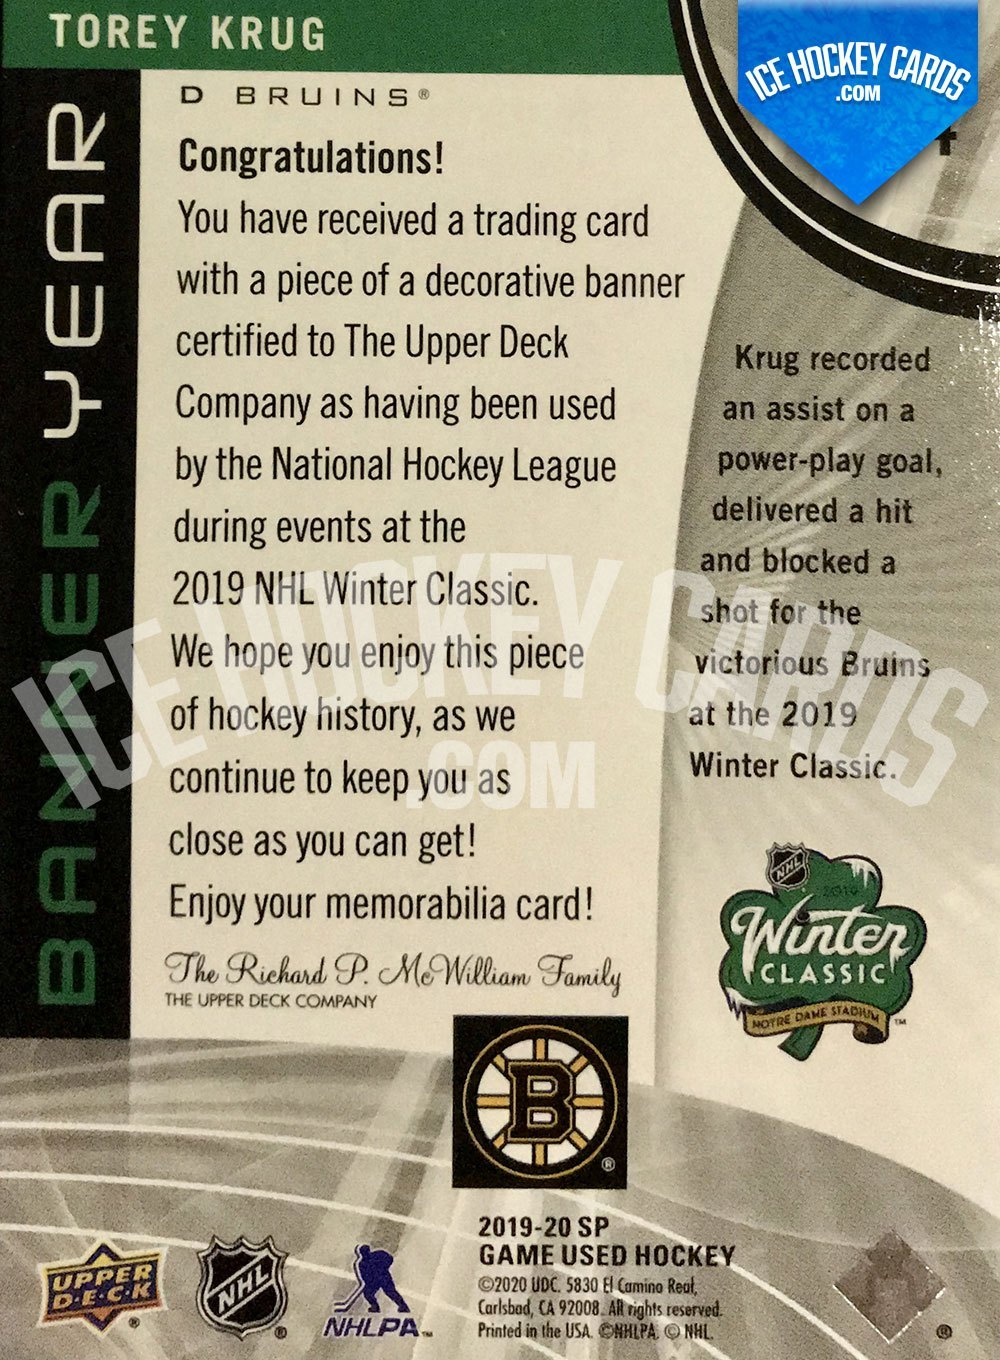 Upper Deck - SP Game Used Hockey 2019-20 - Torey Krug Winter Classic Banner Year Patch Card back